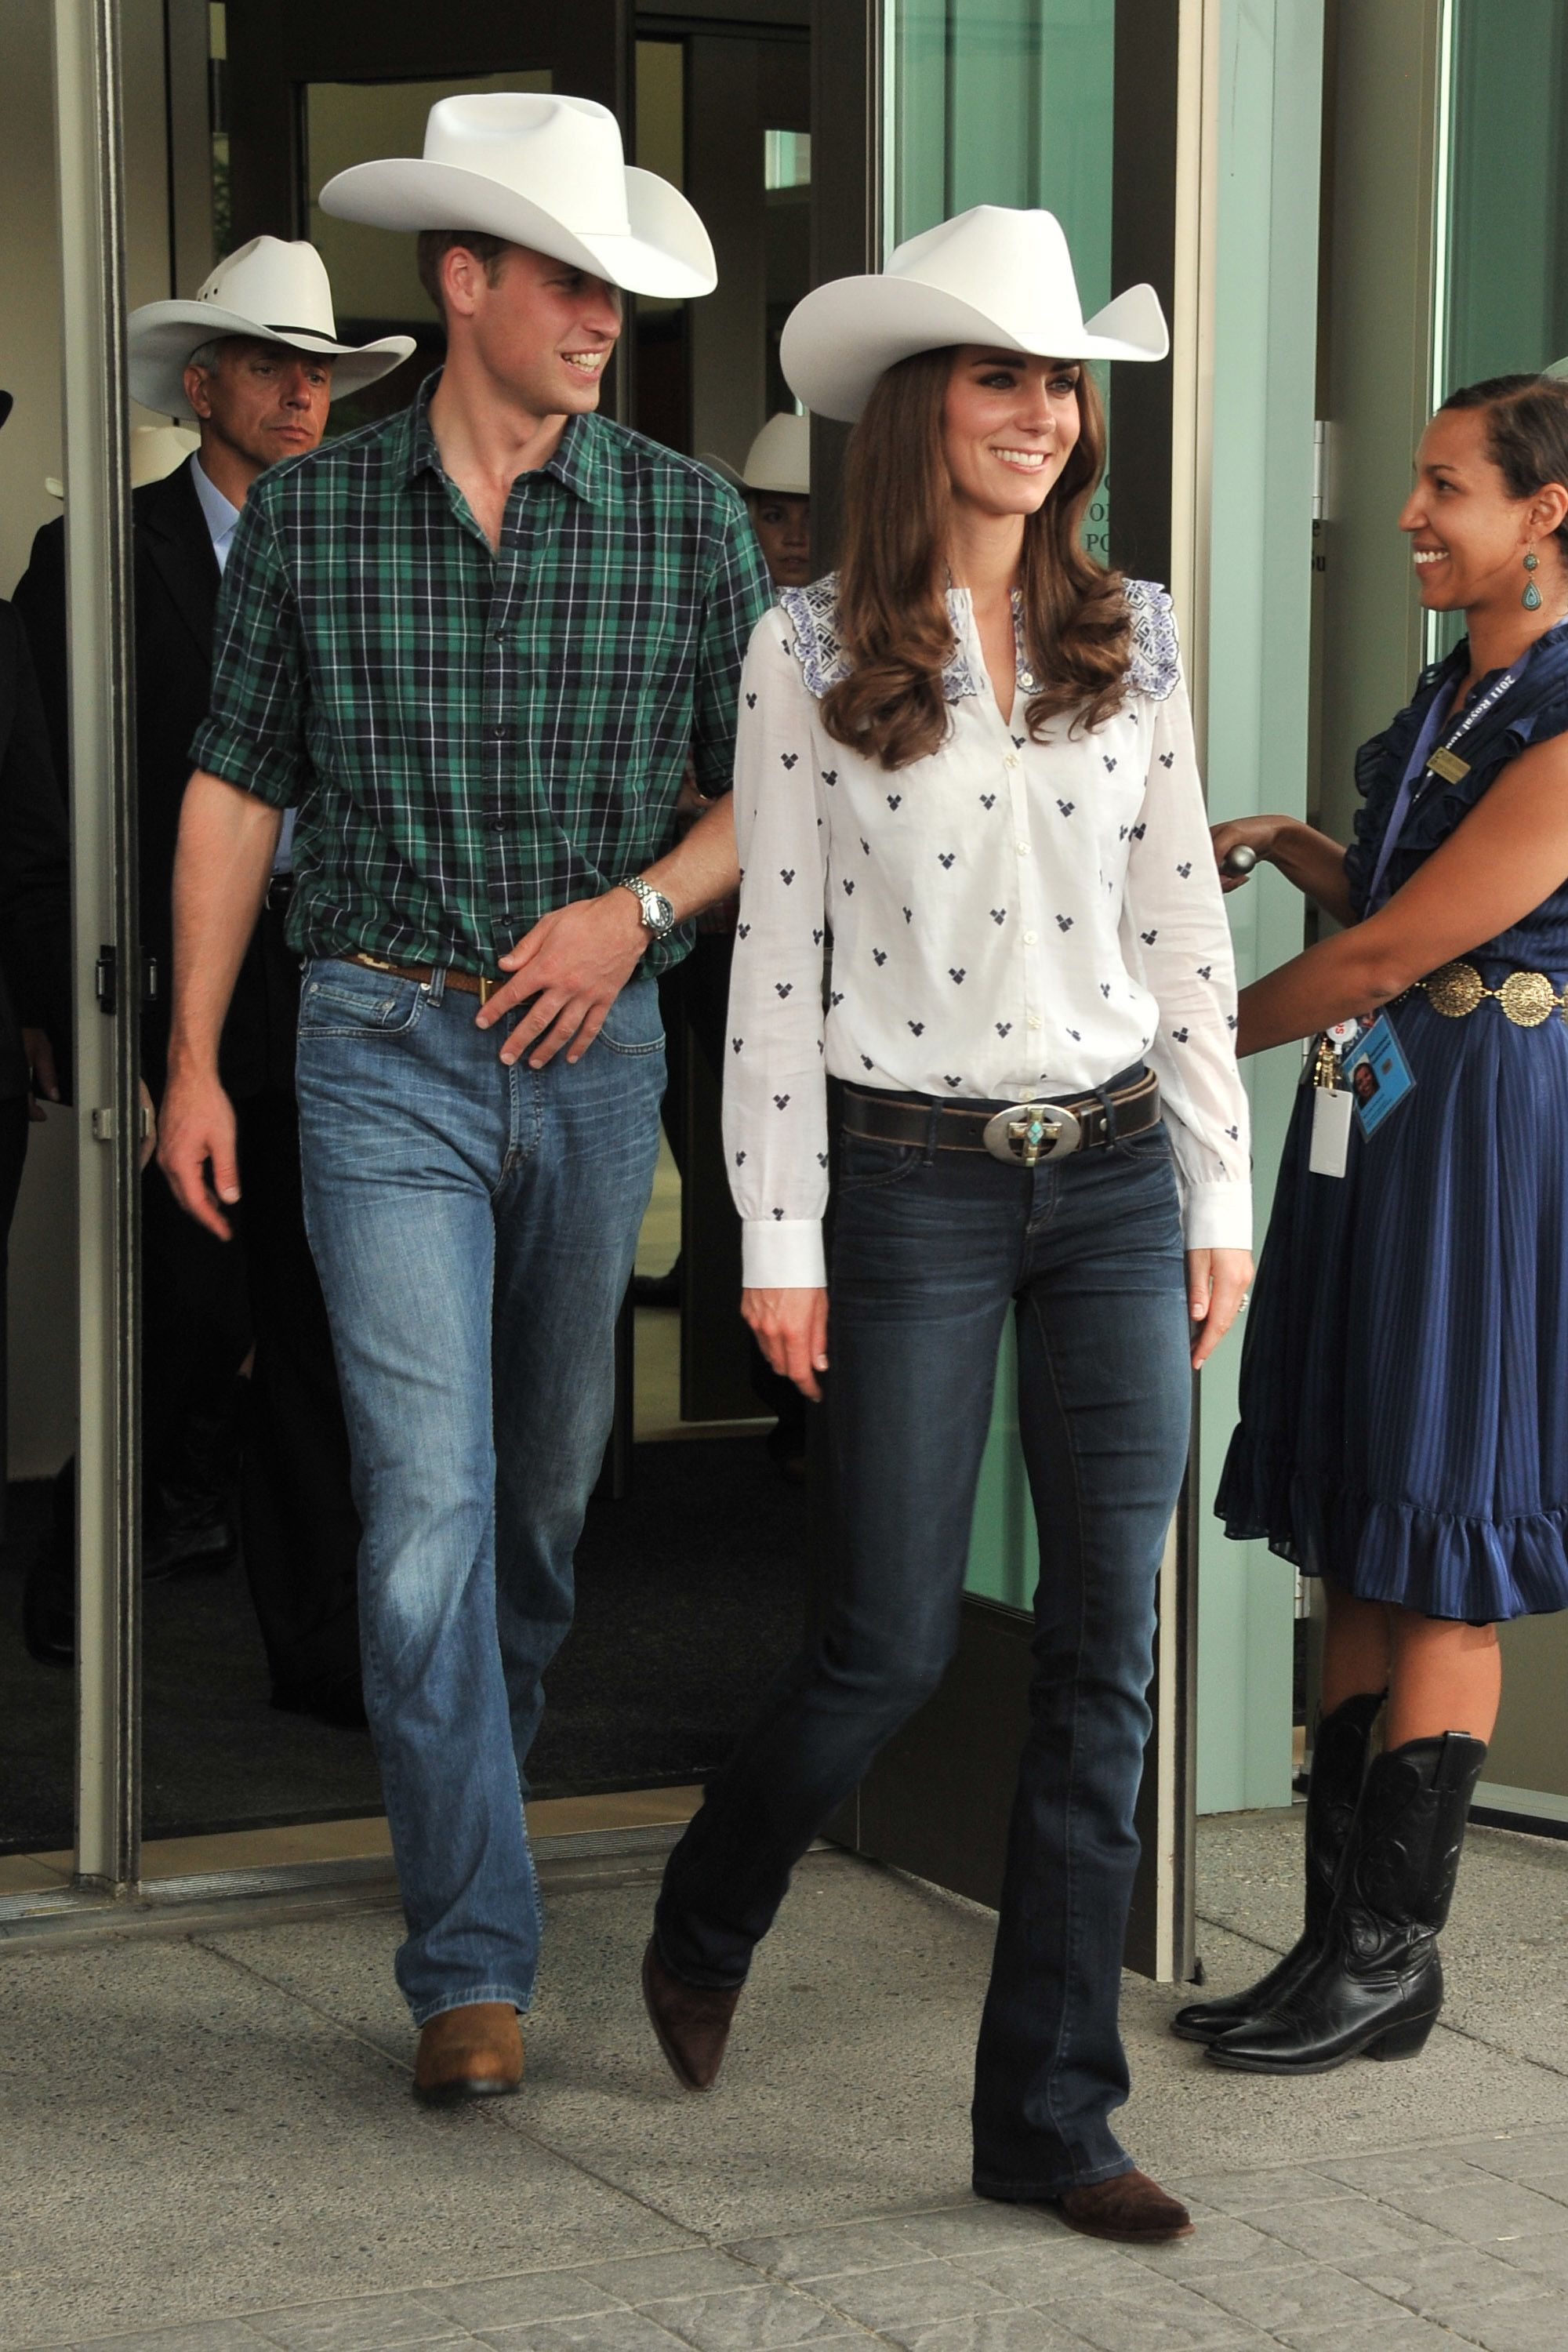 Prince William and Kate Middleton wore matching white cowboy hats to the  Calgary Stampede on their royal tour of Canada. Kate completed her cowgirl  look ... c91bc711ccd